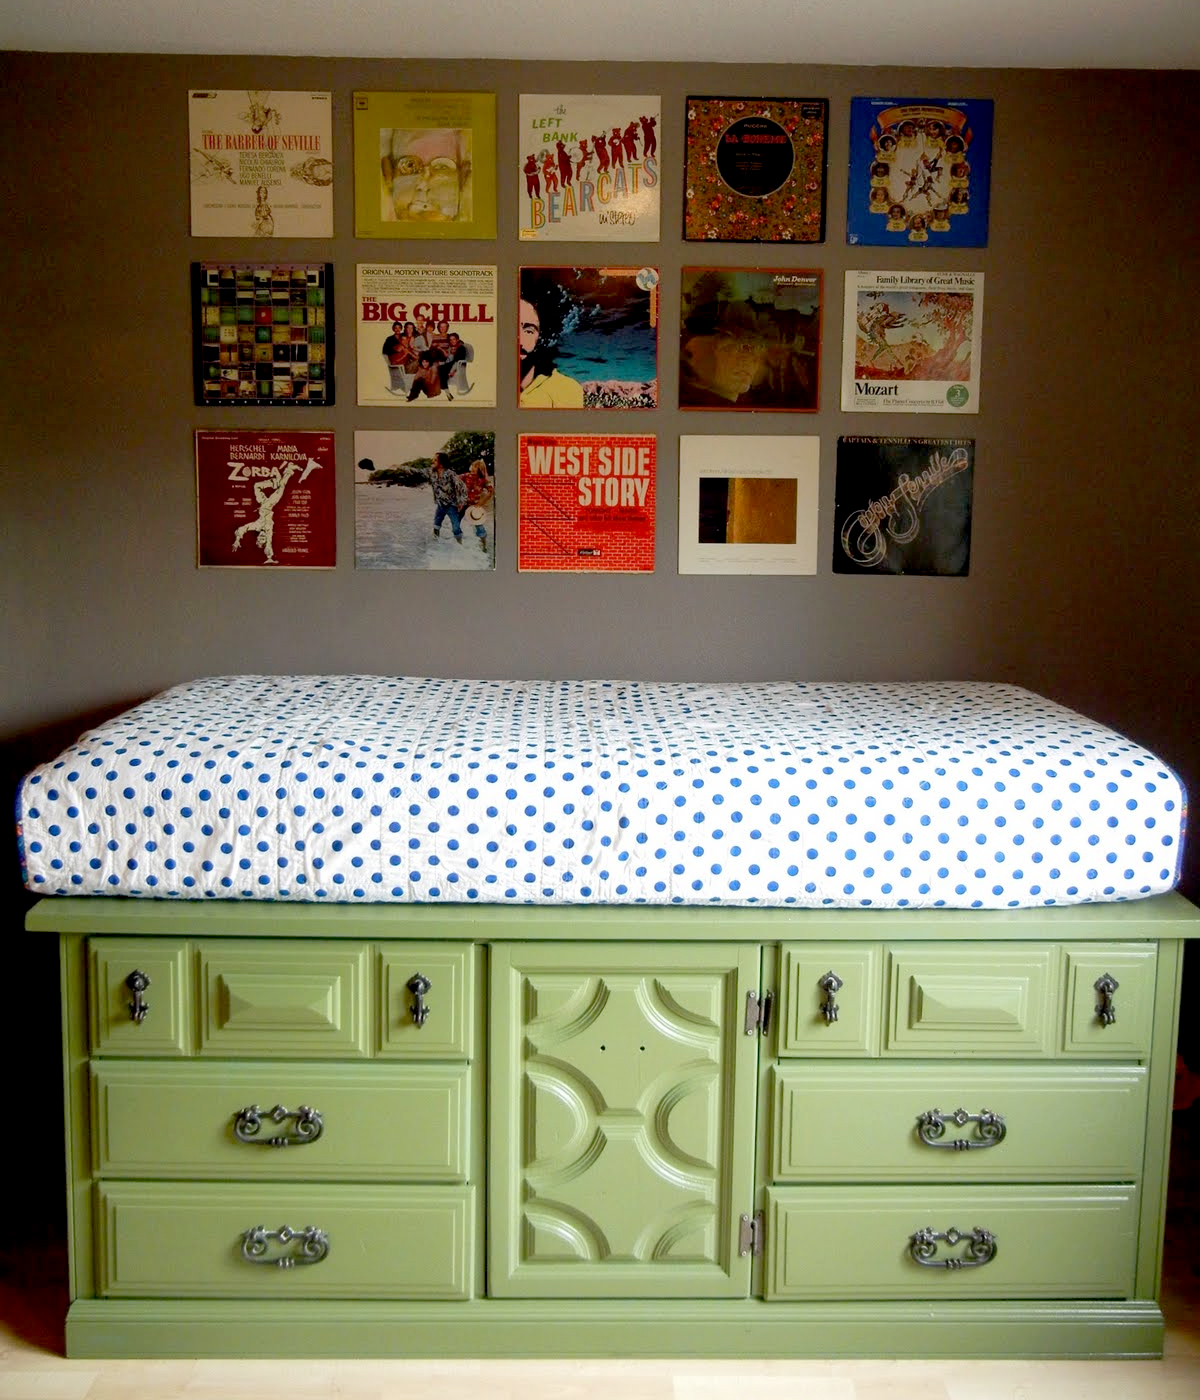 8 Diy Storage Beds To Add Extra Space And Organization To